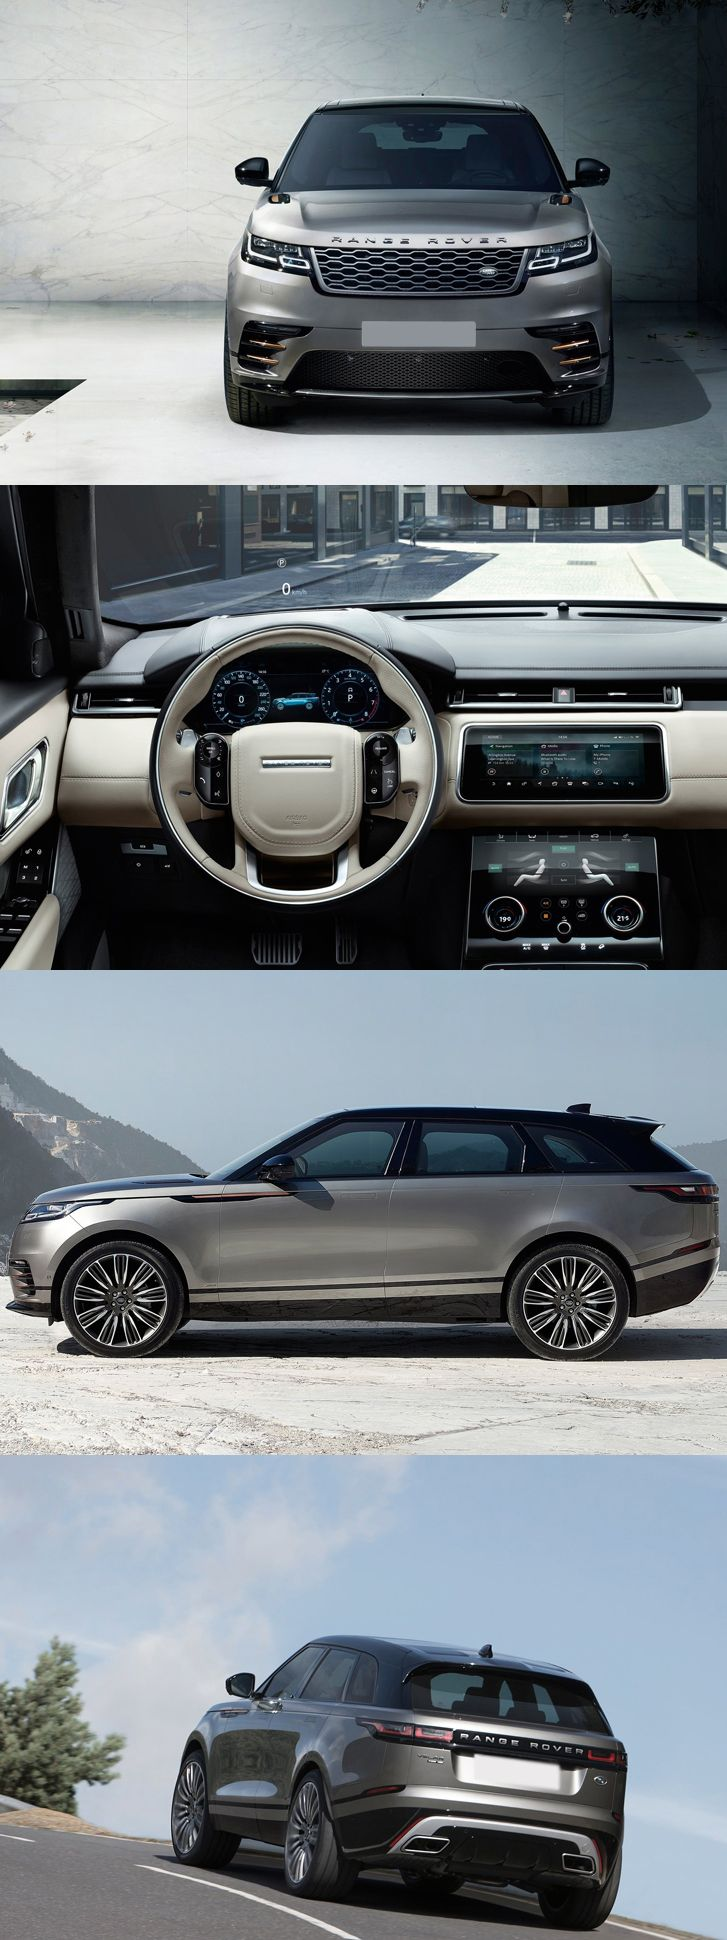 NEW FEATURES OF RANGE ROVER IN LATEST MODEL For more detail:https://www.reconautogearbox.co.uk/blog/new-features-range-rover-latest-model/